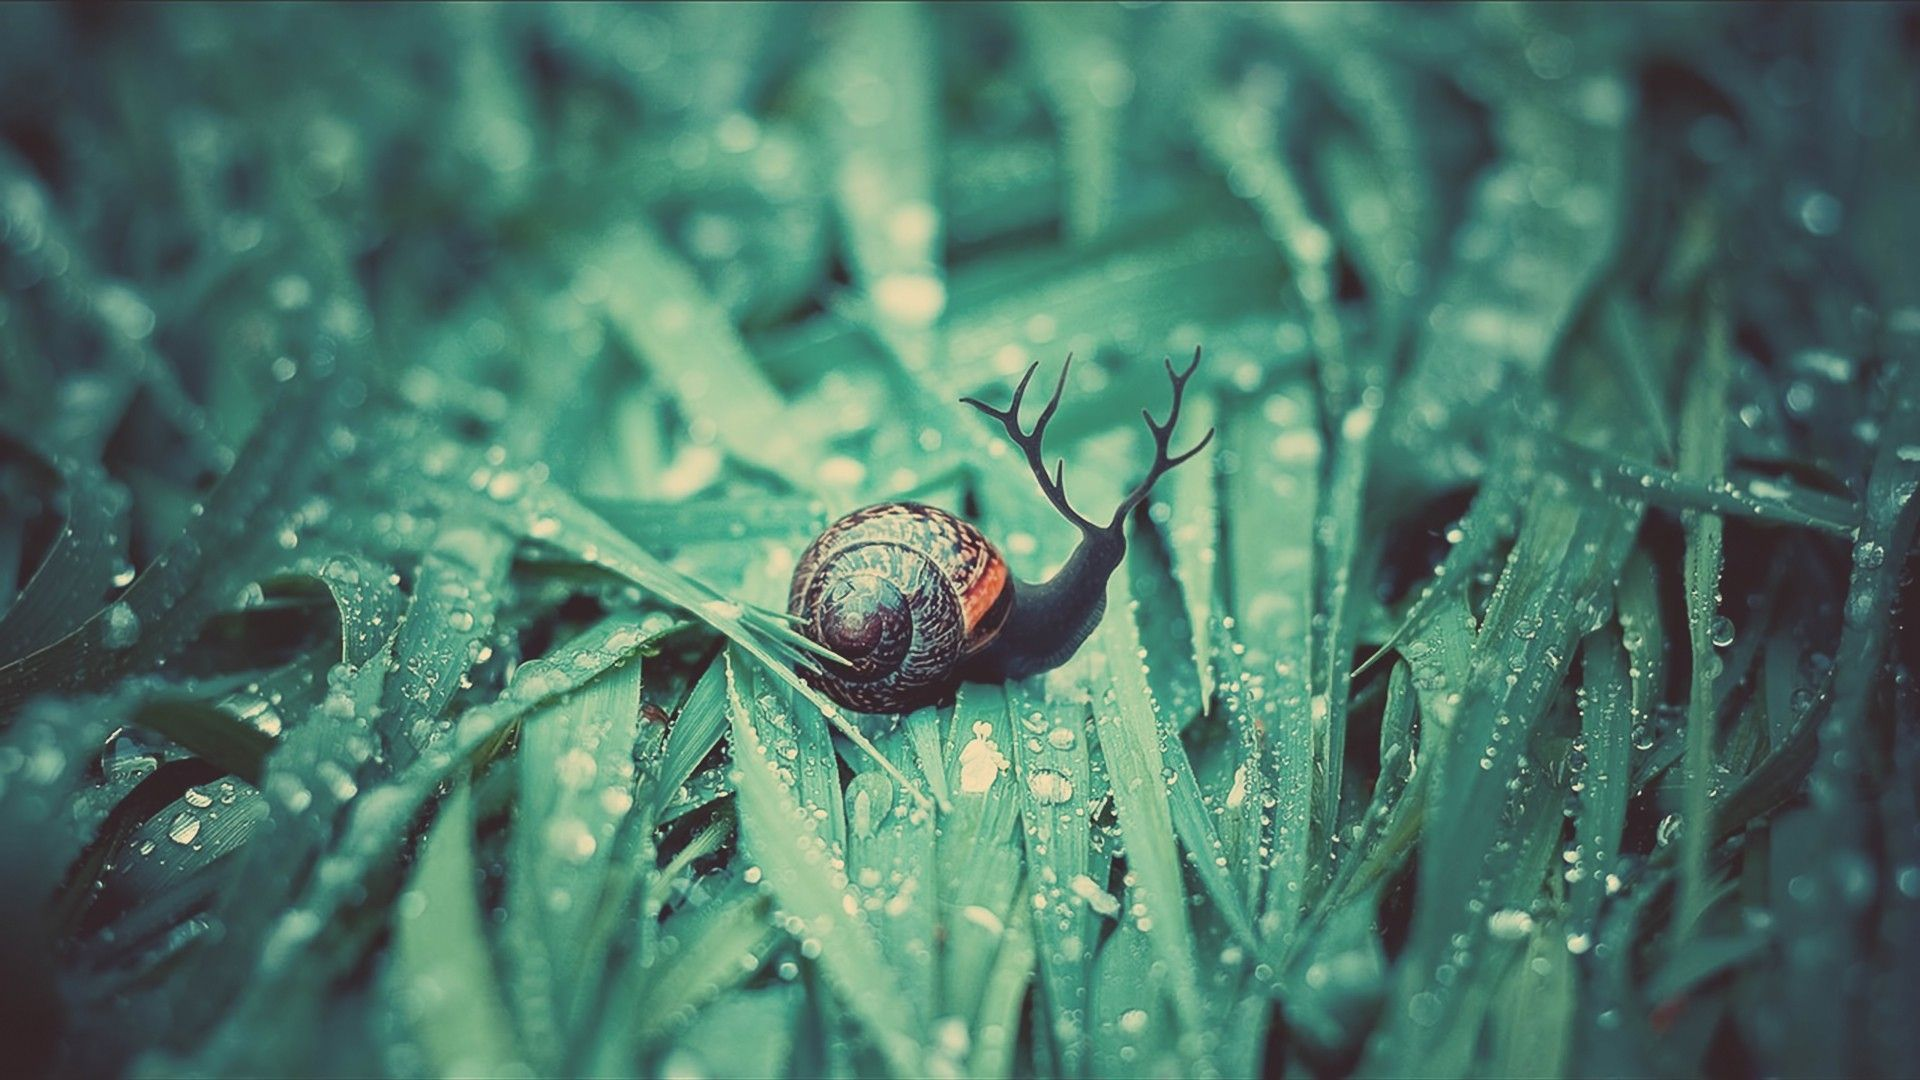 Grape snail wallpapers and image wallpapers pictures photos